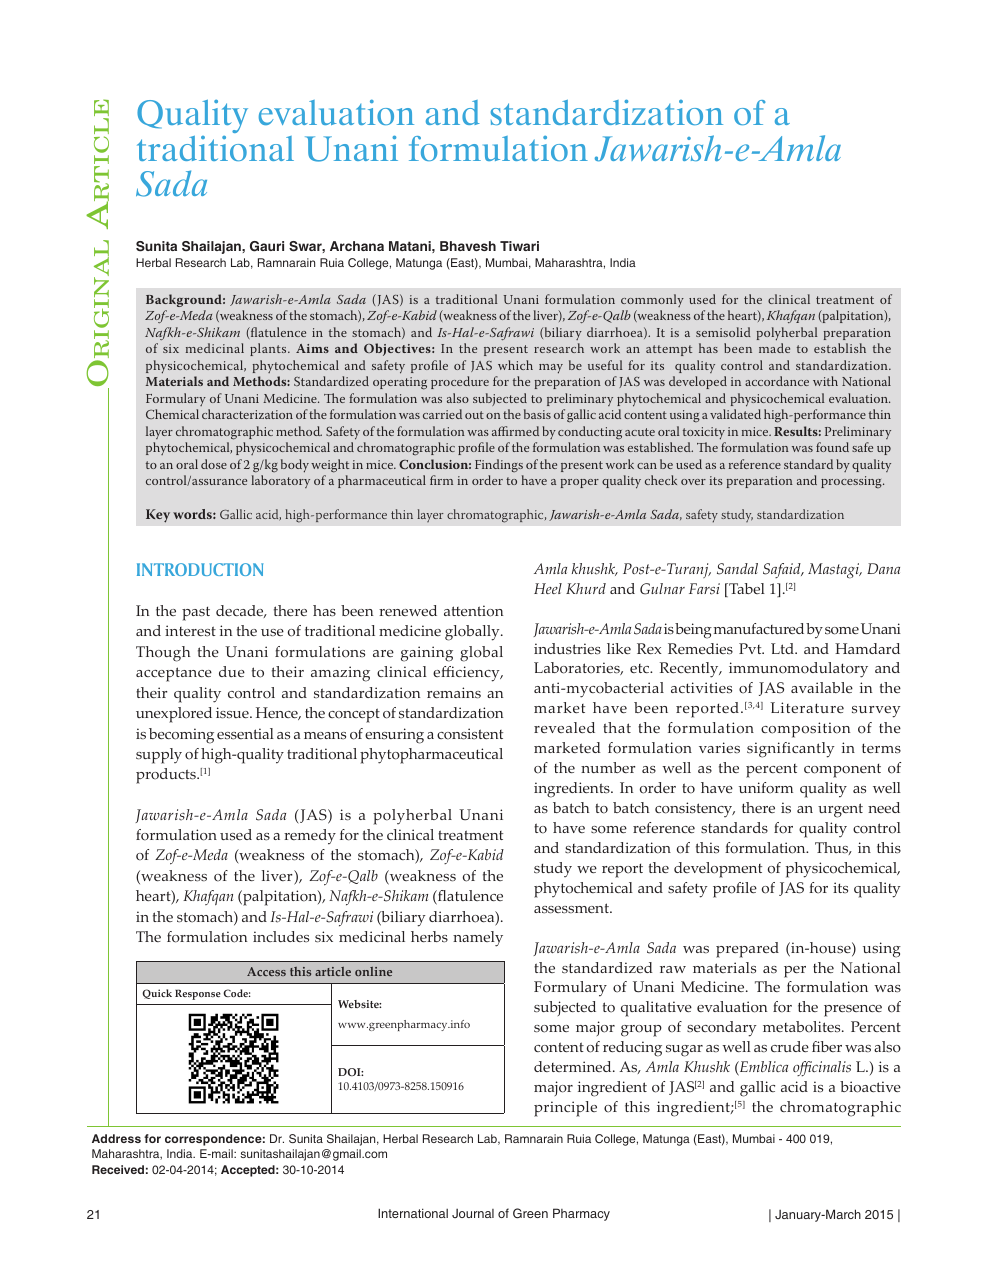 Quality evaluation and standardization of a traditional